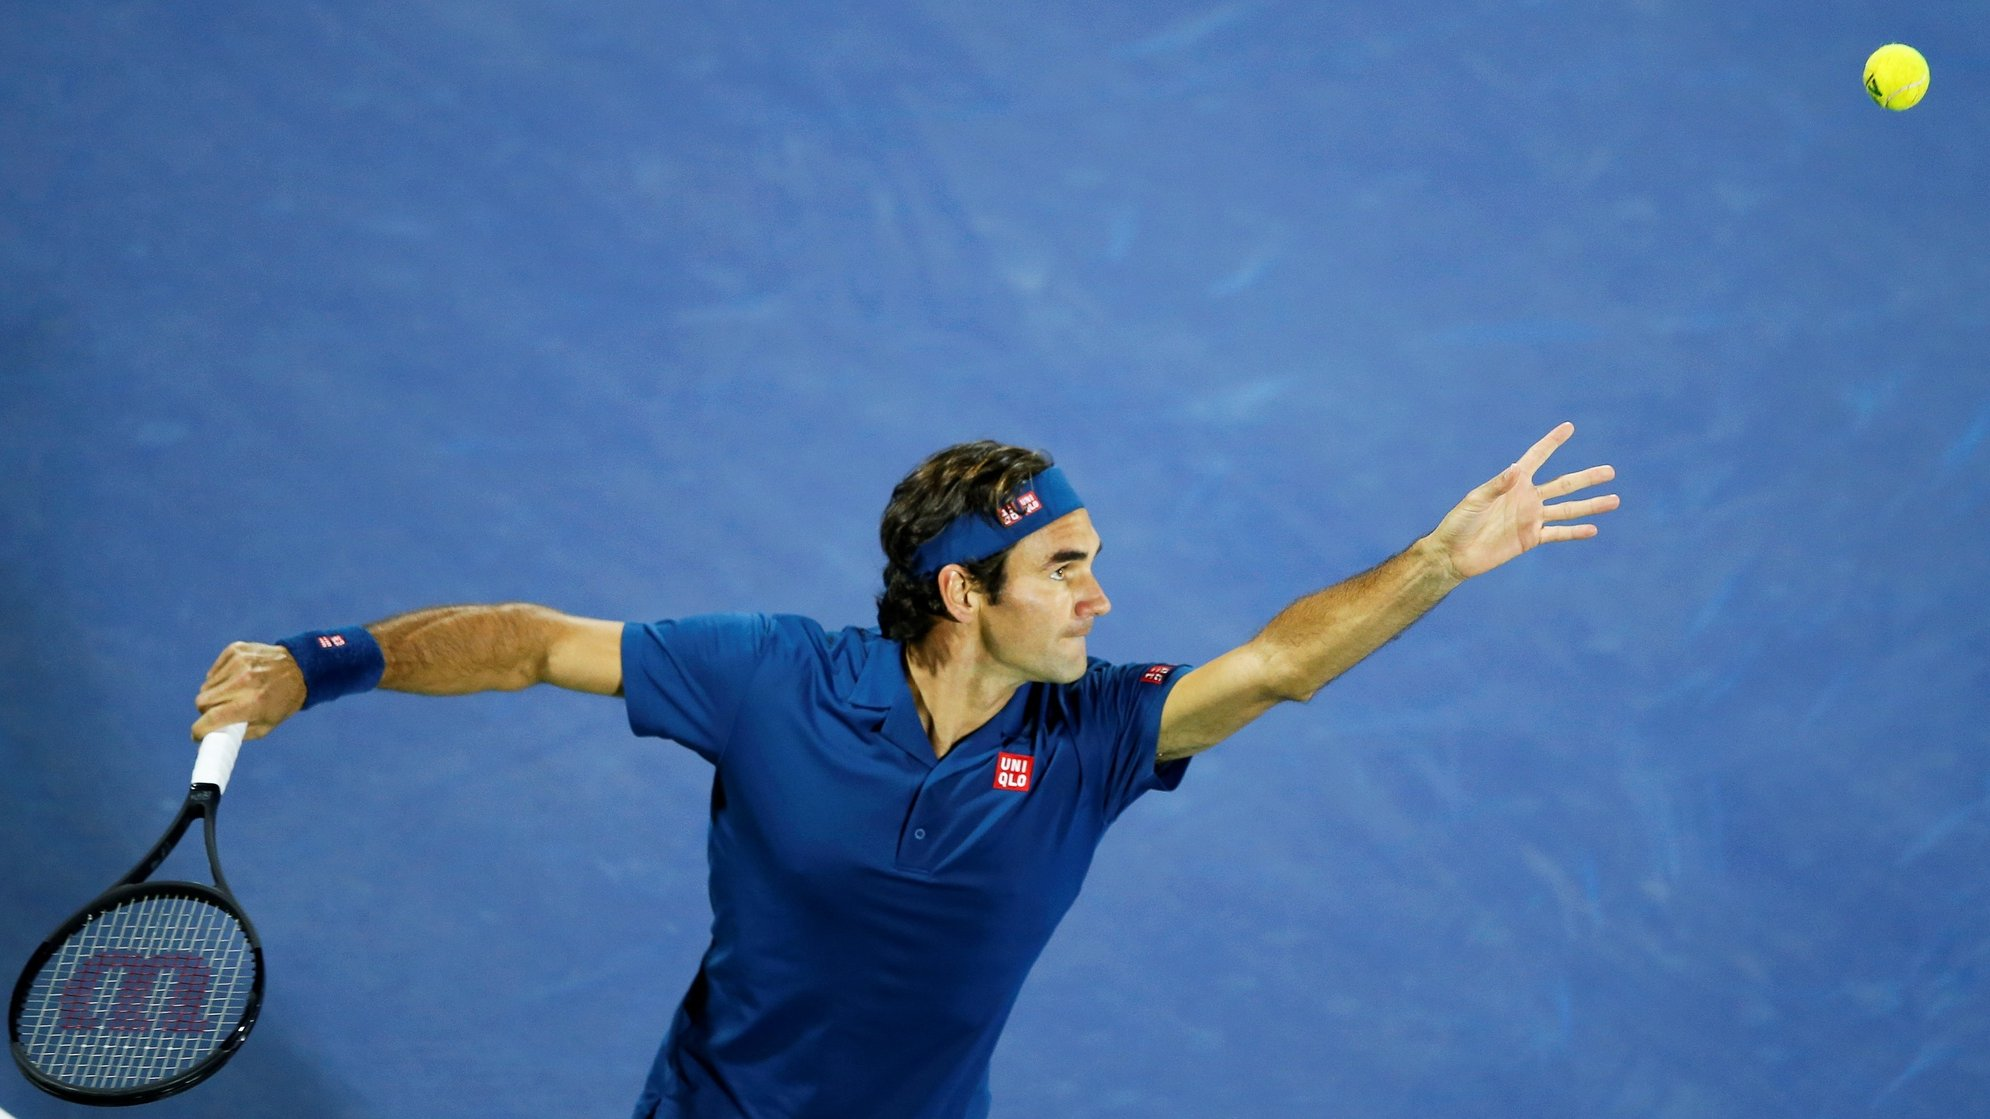 epa08429186 Roger Federer of Switzerland in action during a match at the Dubai Duty Free Tennis ATP Championships 2019 in Dubai, United Arab Emirates, 02 March 2019 (re-issued 18 May 2020). As prominent in both sky and sea, the color blue is often associated with open spaces, freedom, depth and wisdom. In psychology blue is viewed as a non-threatening color and it is believed to have positive and calming effects on body and mind. Often linked with intellect, confidence and reliability, it is known in corporate America as a power color.  EPA/ALI HAIDER ATTENTION: This Image is part of a PHOTO SET *** Local Caption *** 55024934